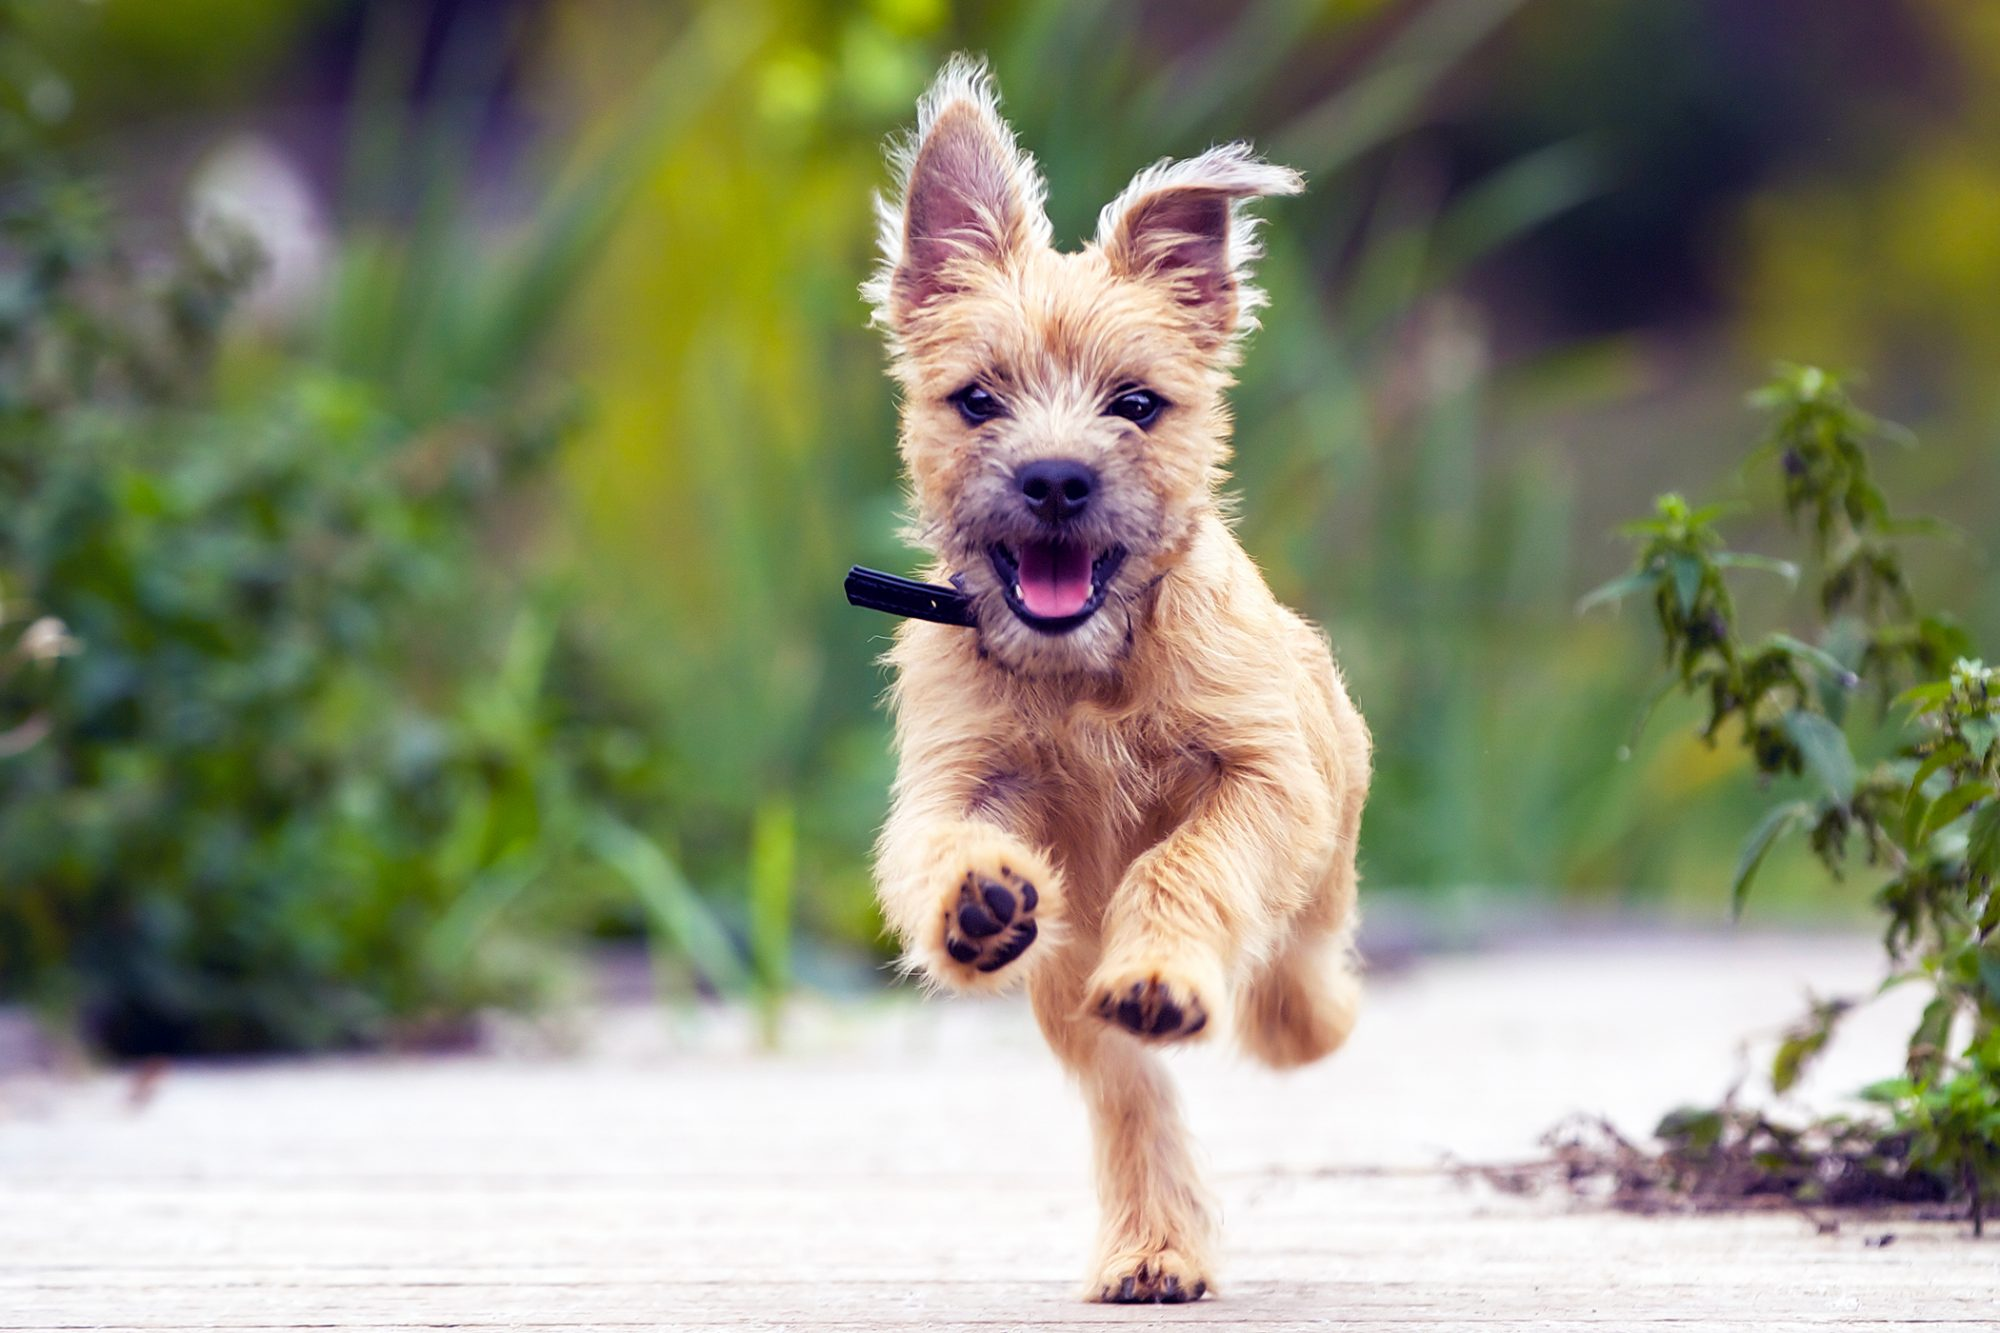 Terrier puppy happily runs toward camera